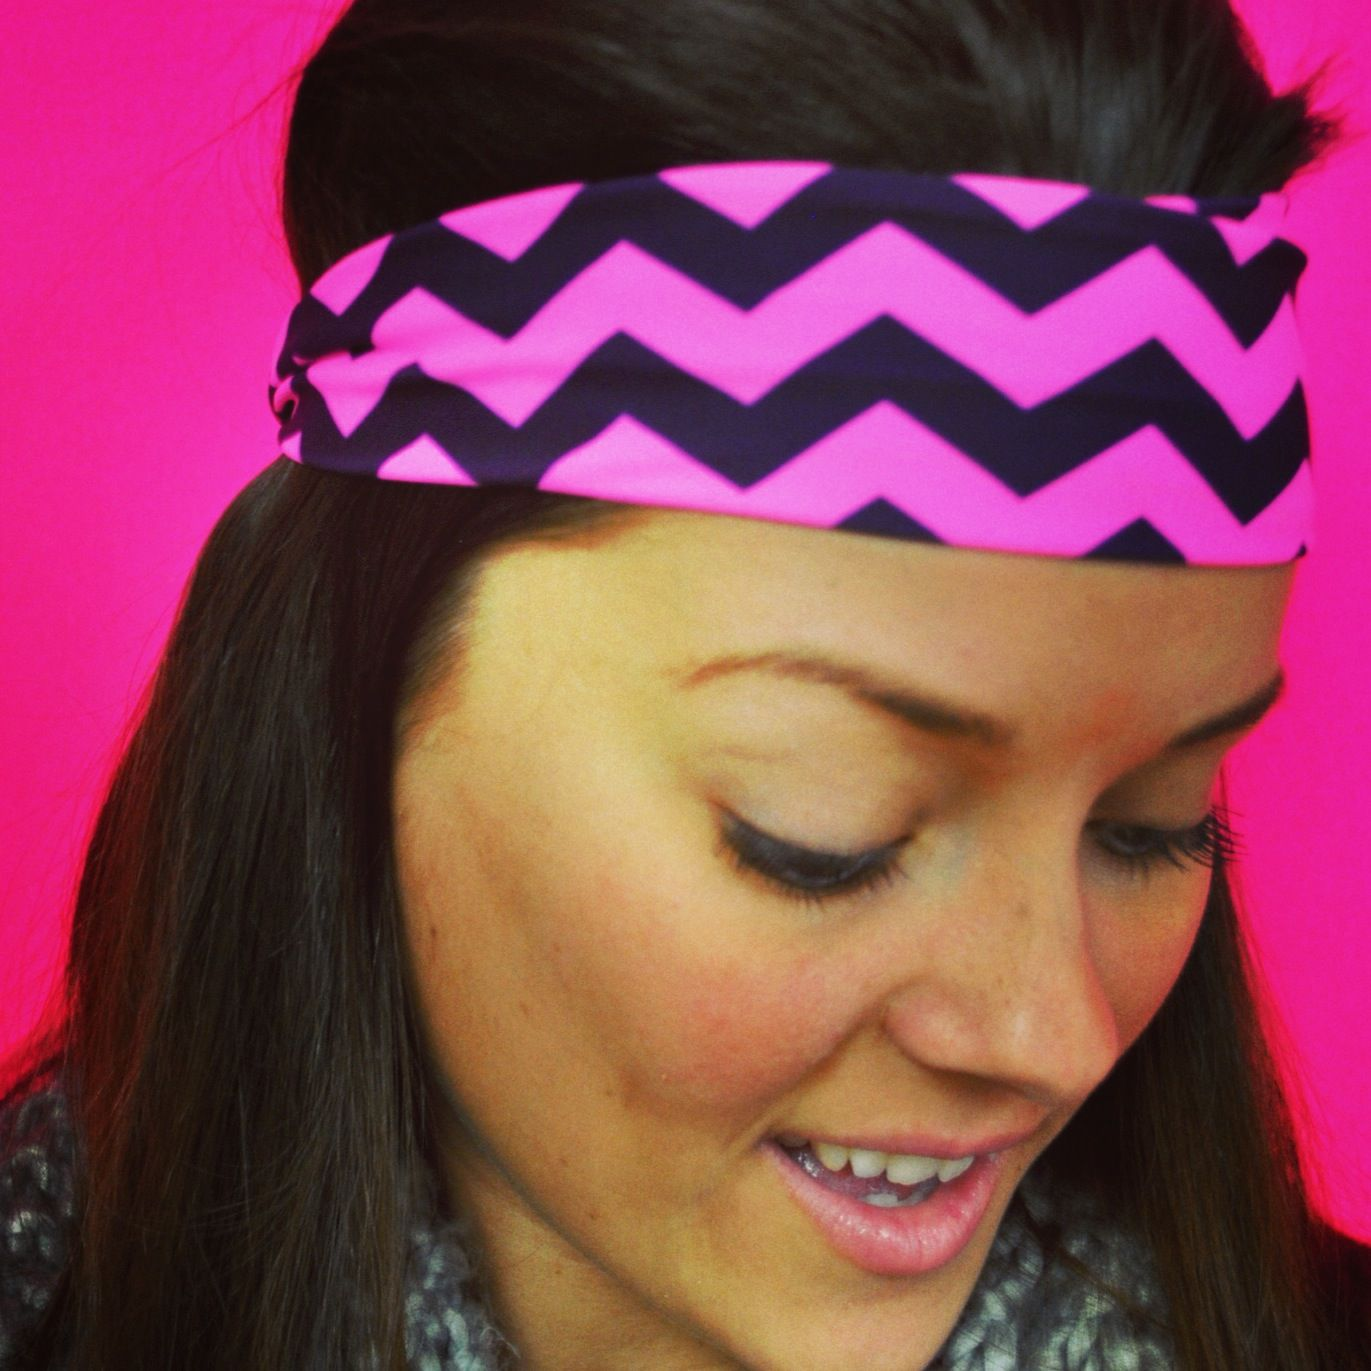 ecaf5f7027005d87d8e86cbd6dbd1310 - How To Get A Headband To Stay In Place